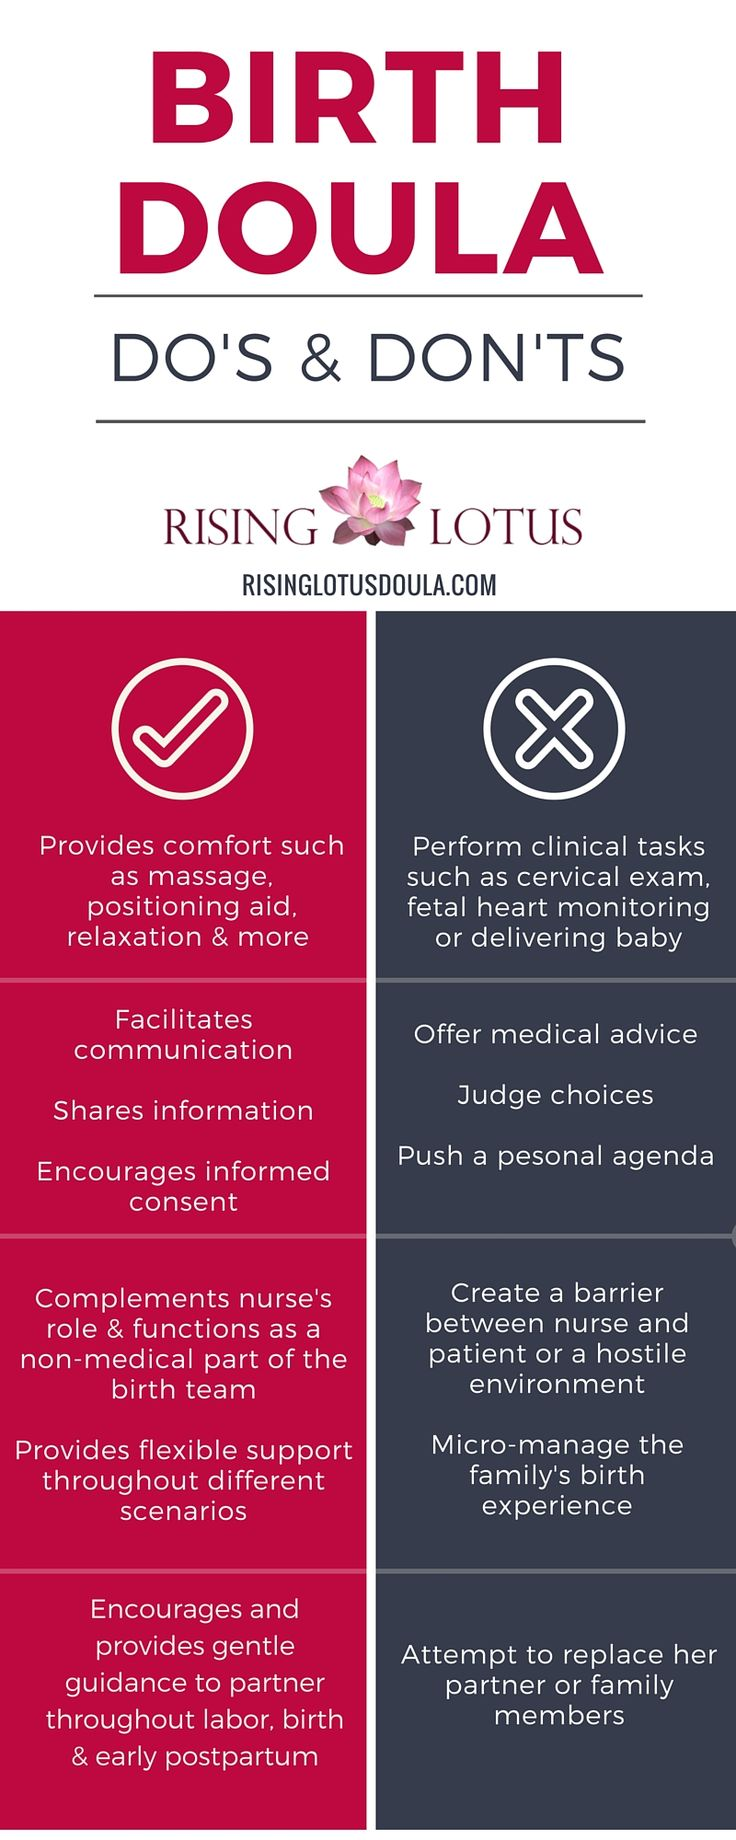 "Birth Doula ""Do's & Don'ts"" Infographic on ethics, scope of practice and relationship with medical care providers."